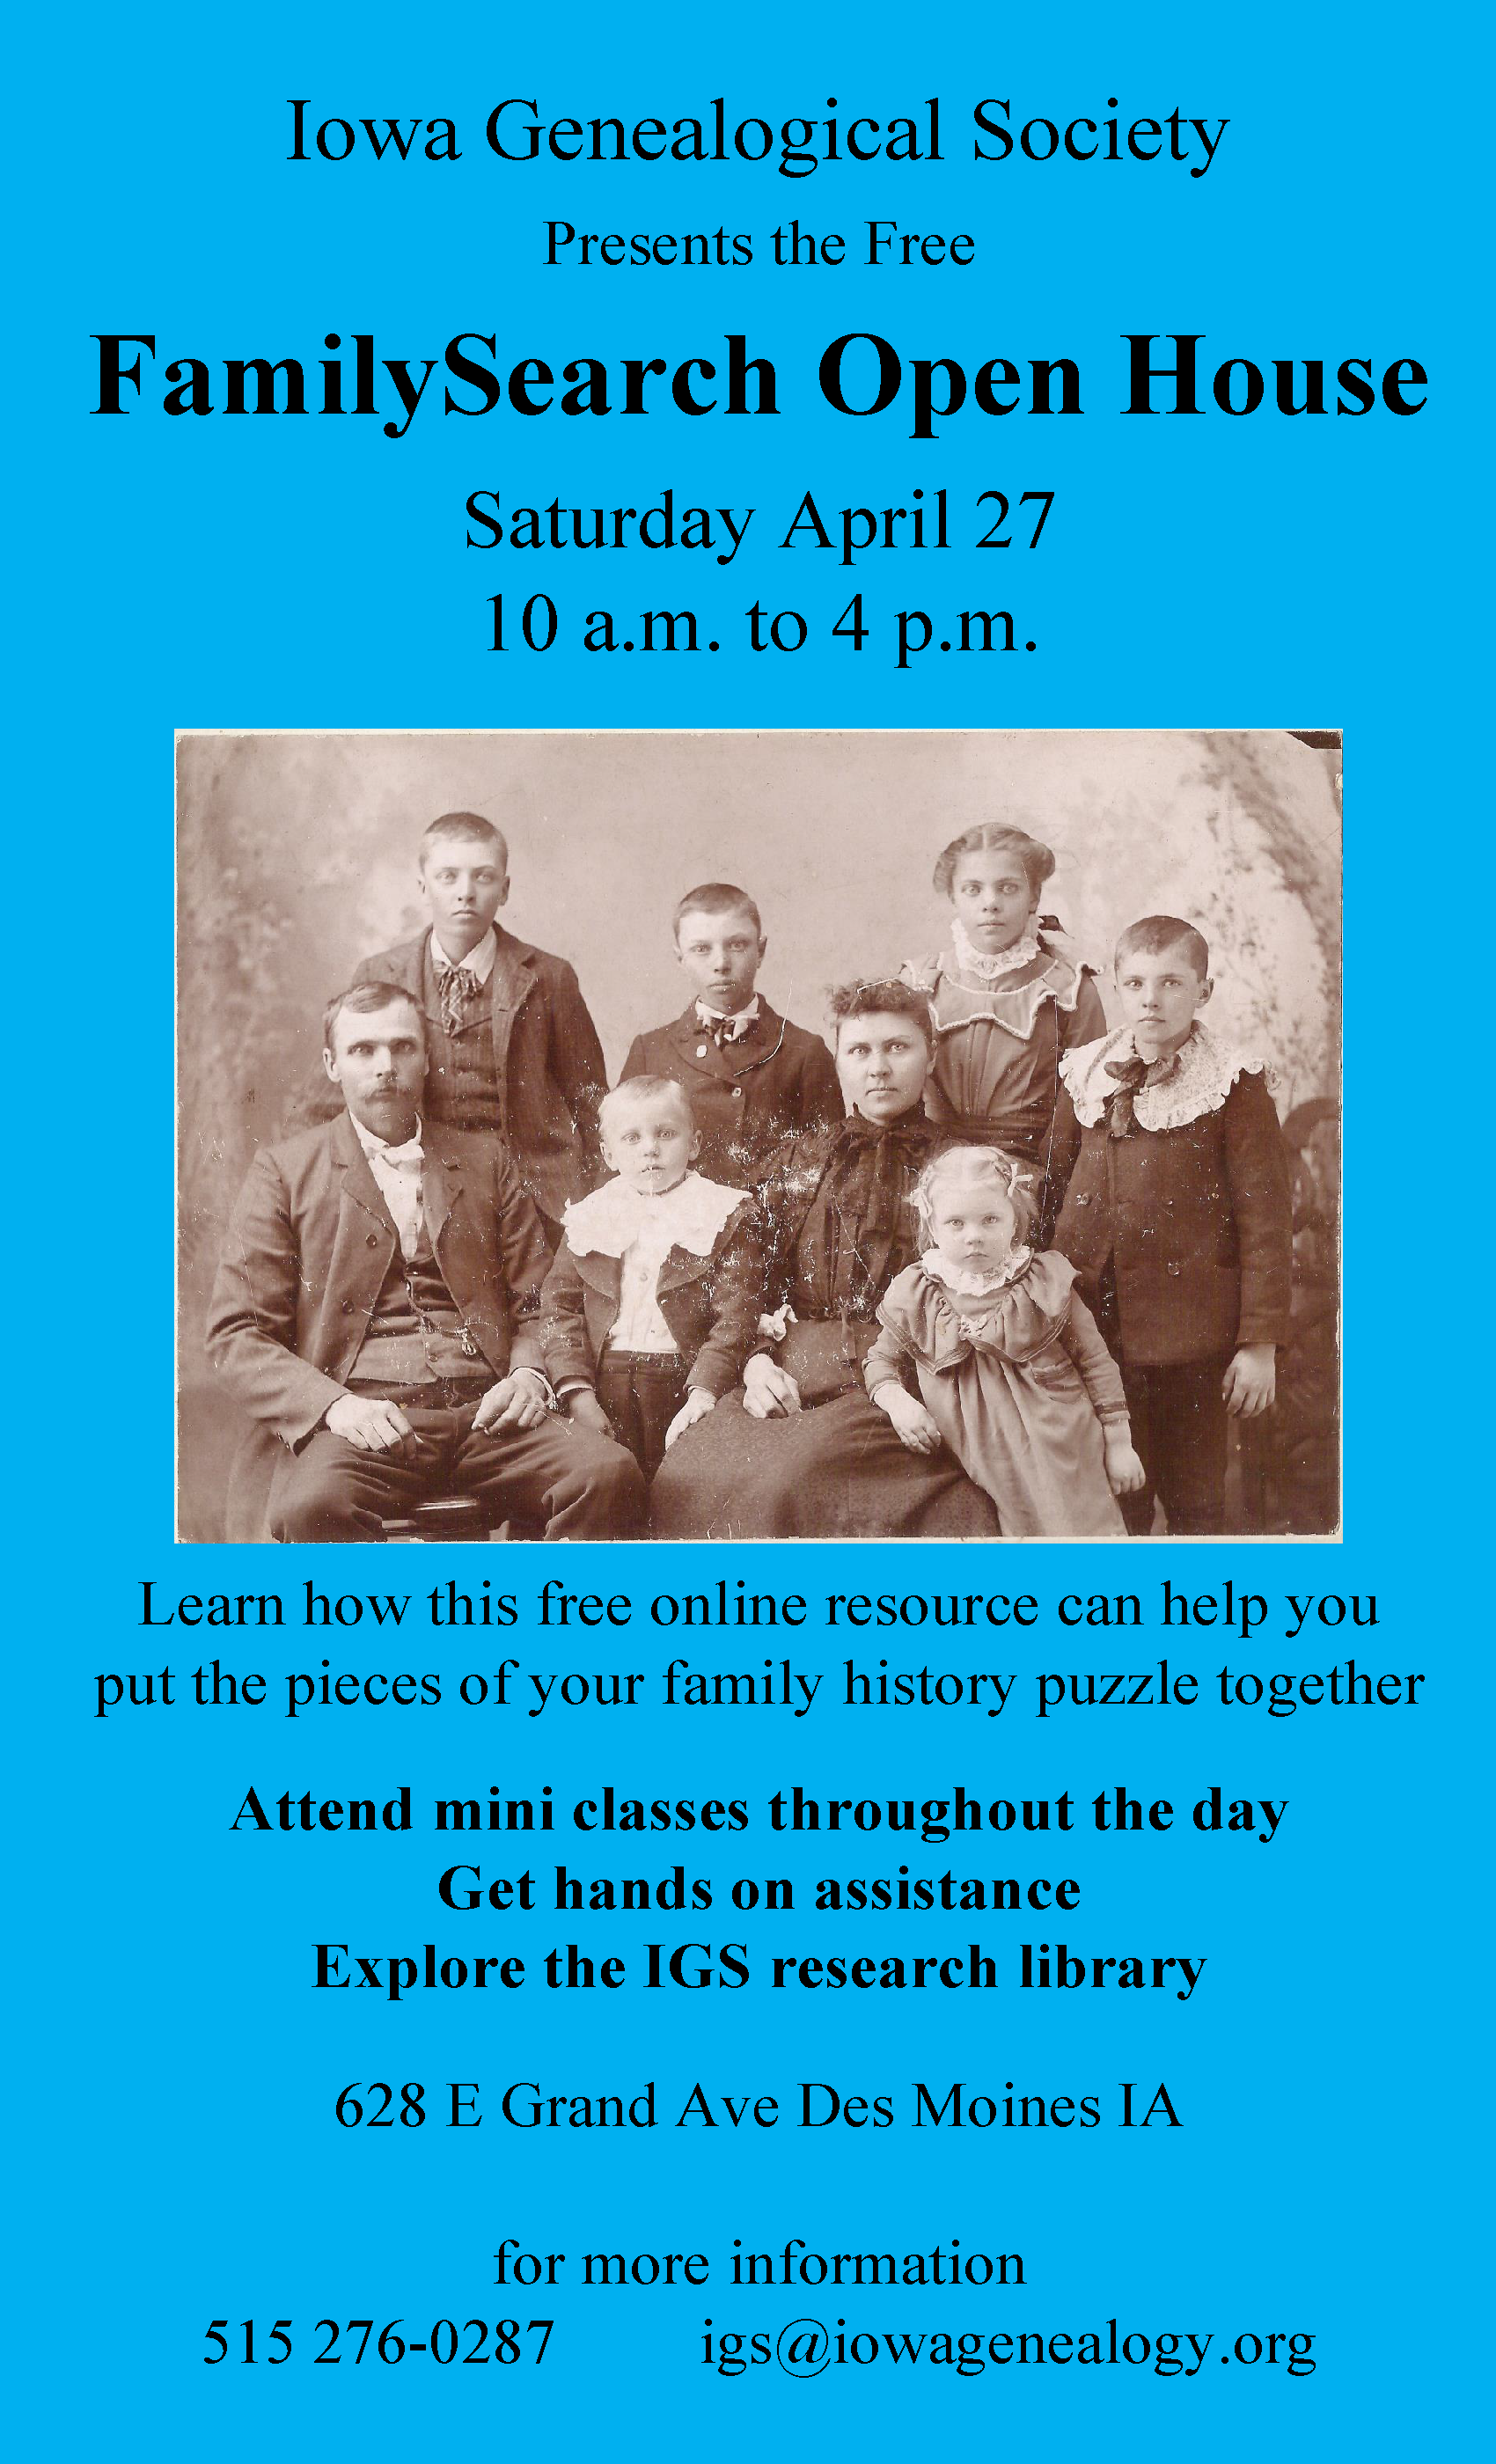 FamilySearch Open House poster